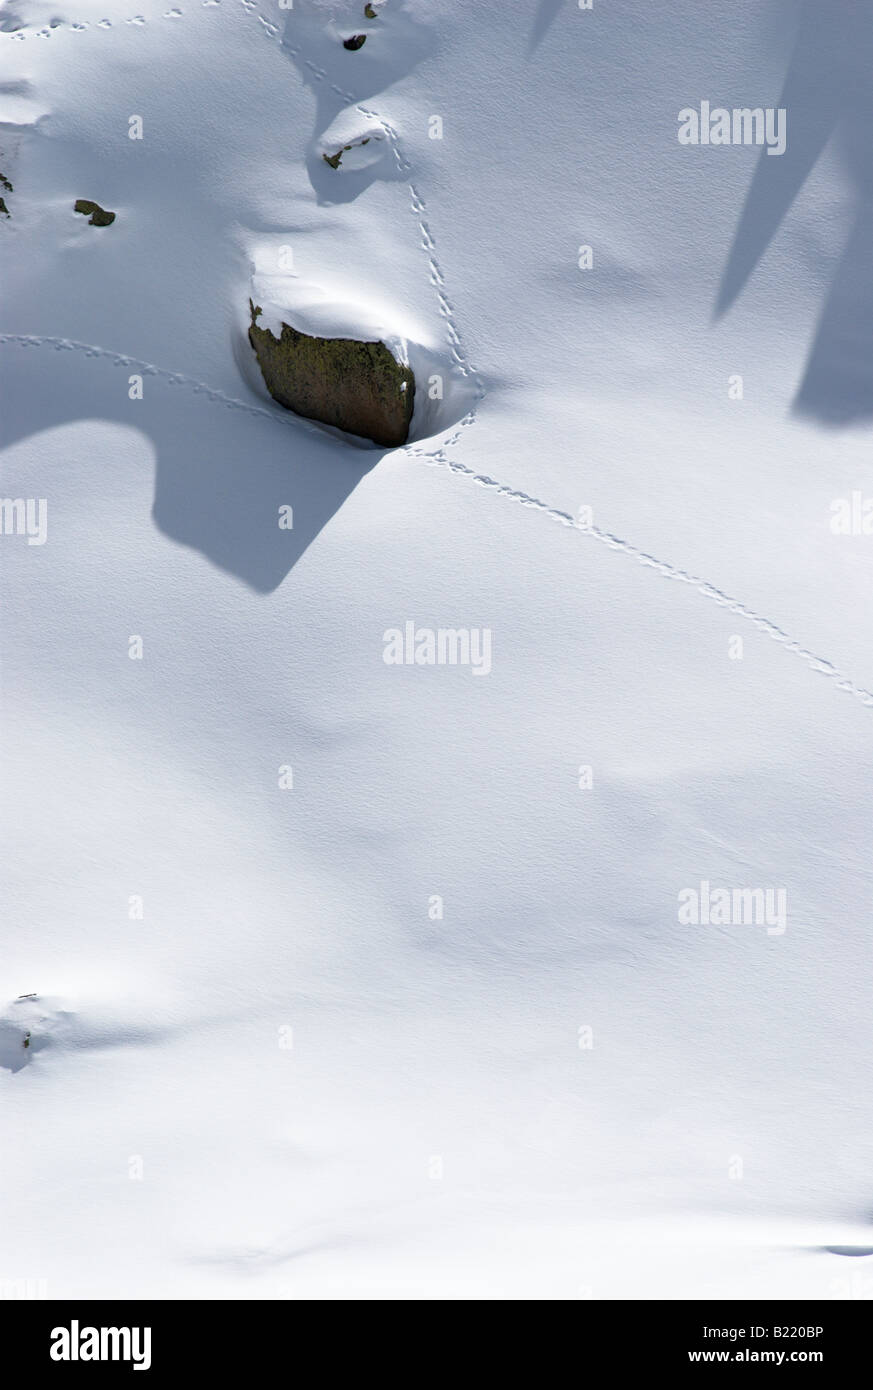 Rabbit tracks in fresh nicely textured snow surface - Stock Image